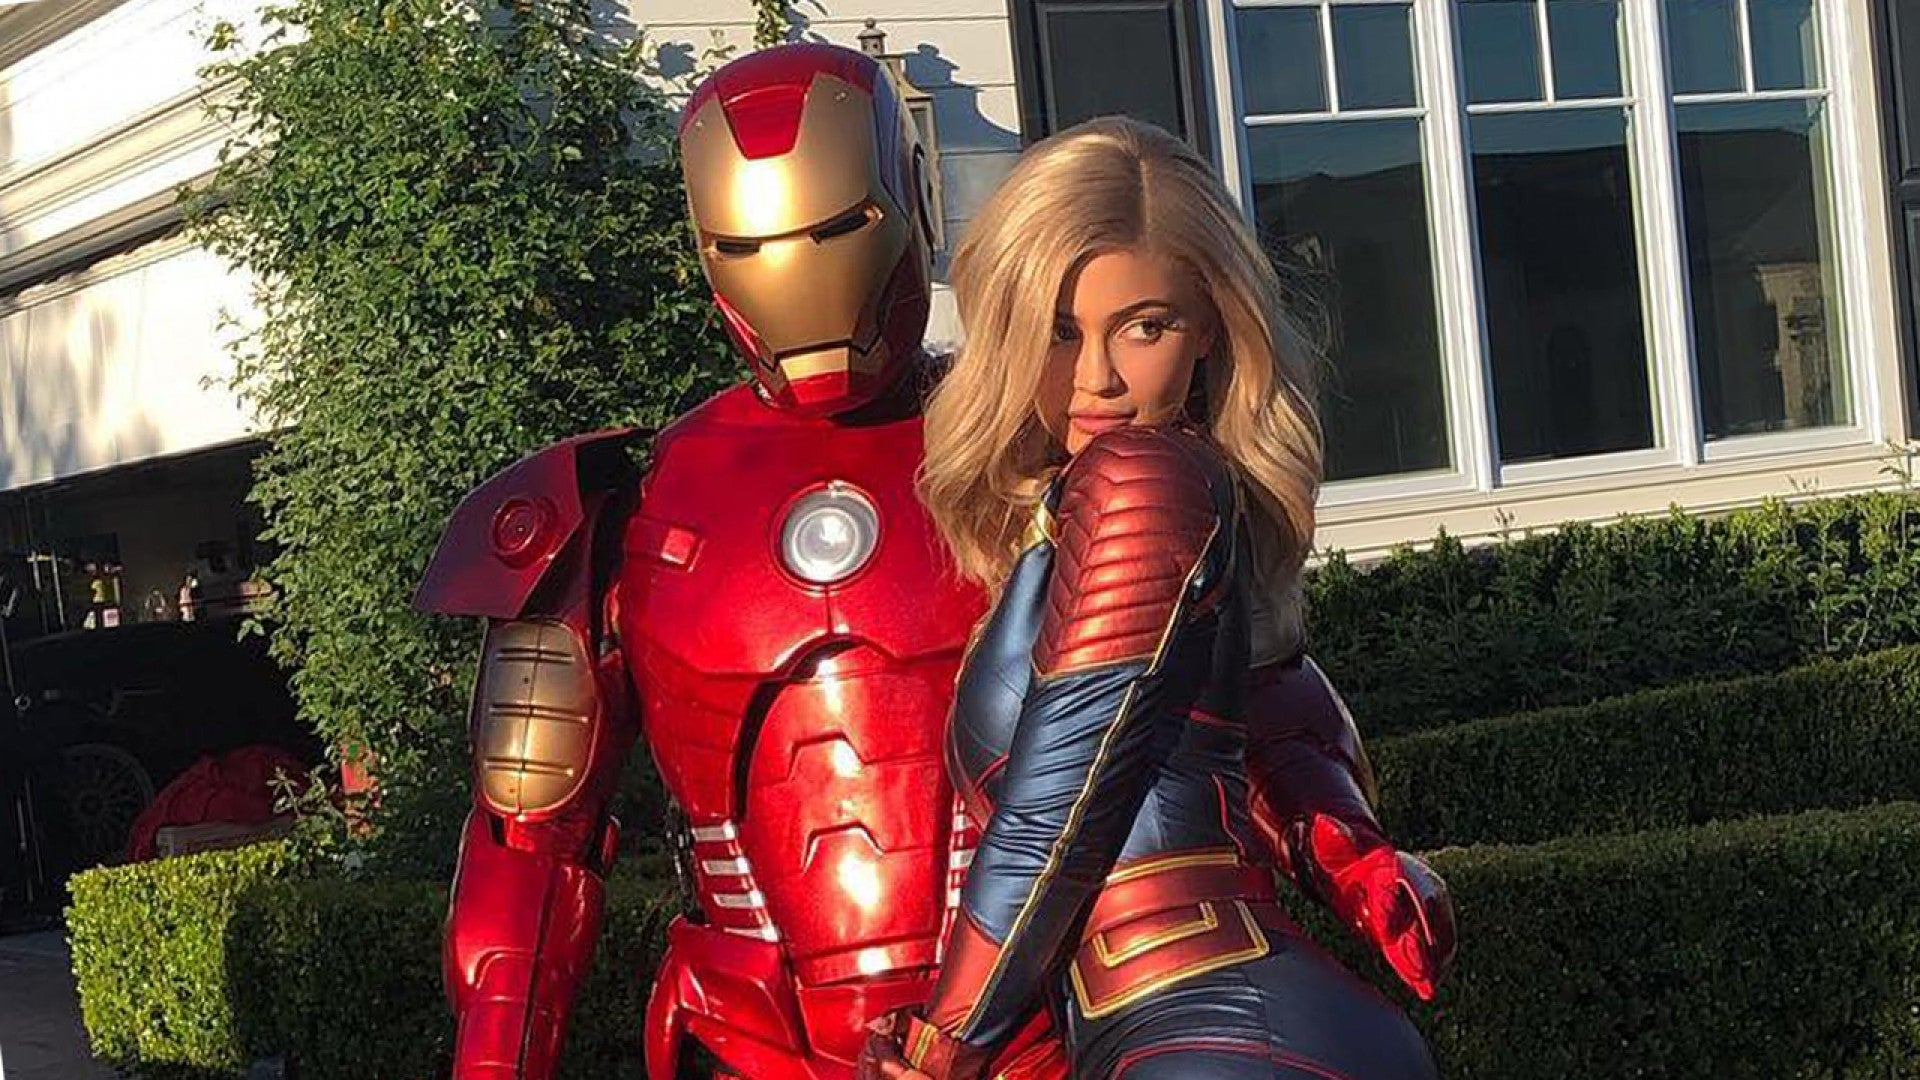 Kylie Jenner Travis Scott And Stormi Dress Up As Avengers Endgame Superheroes For Rapper S Birthday Party Entertainment Tonight Captain marvel embodies hope and what's to come in infinity war. park — who's been with marvel for nine years — has coincidentally had the honor of designing a lot of the other mcu female superheroes including black widow, scarlett witch, hela, mantis, nebula, and wasp! why kylie jenner and travis scott dressed up as iron man and captain marvel